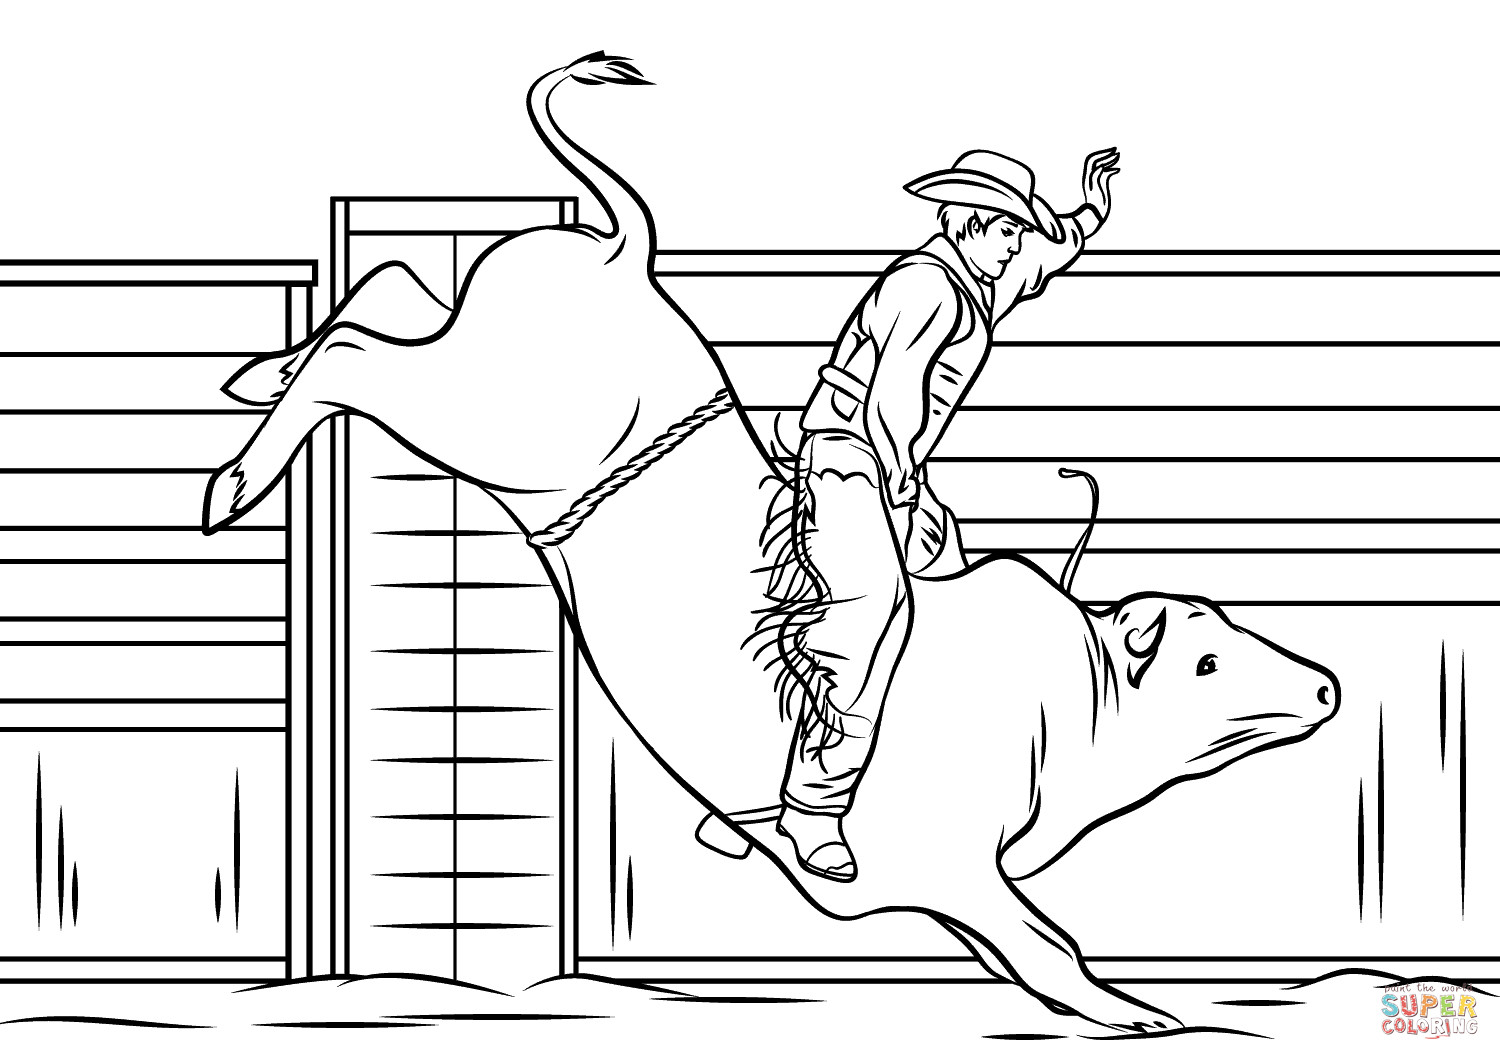 Bull Riding Coloring Pages  Cowboy Riding a Bull coloring page